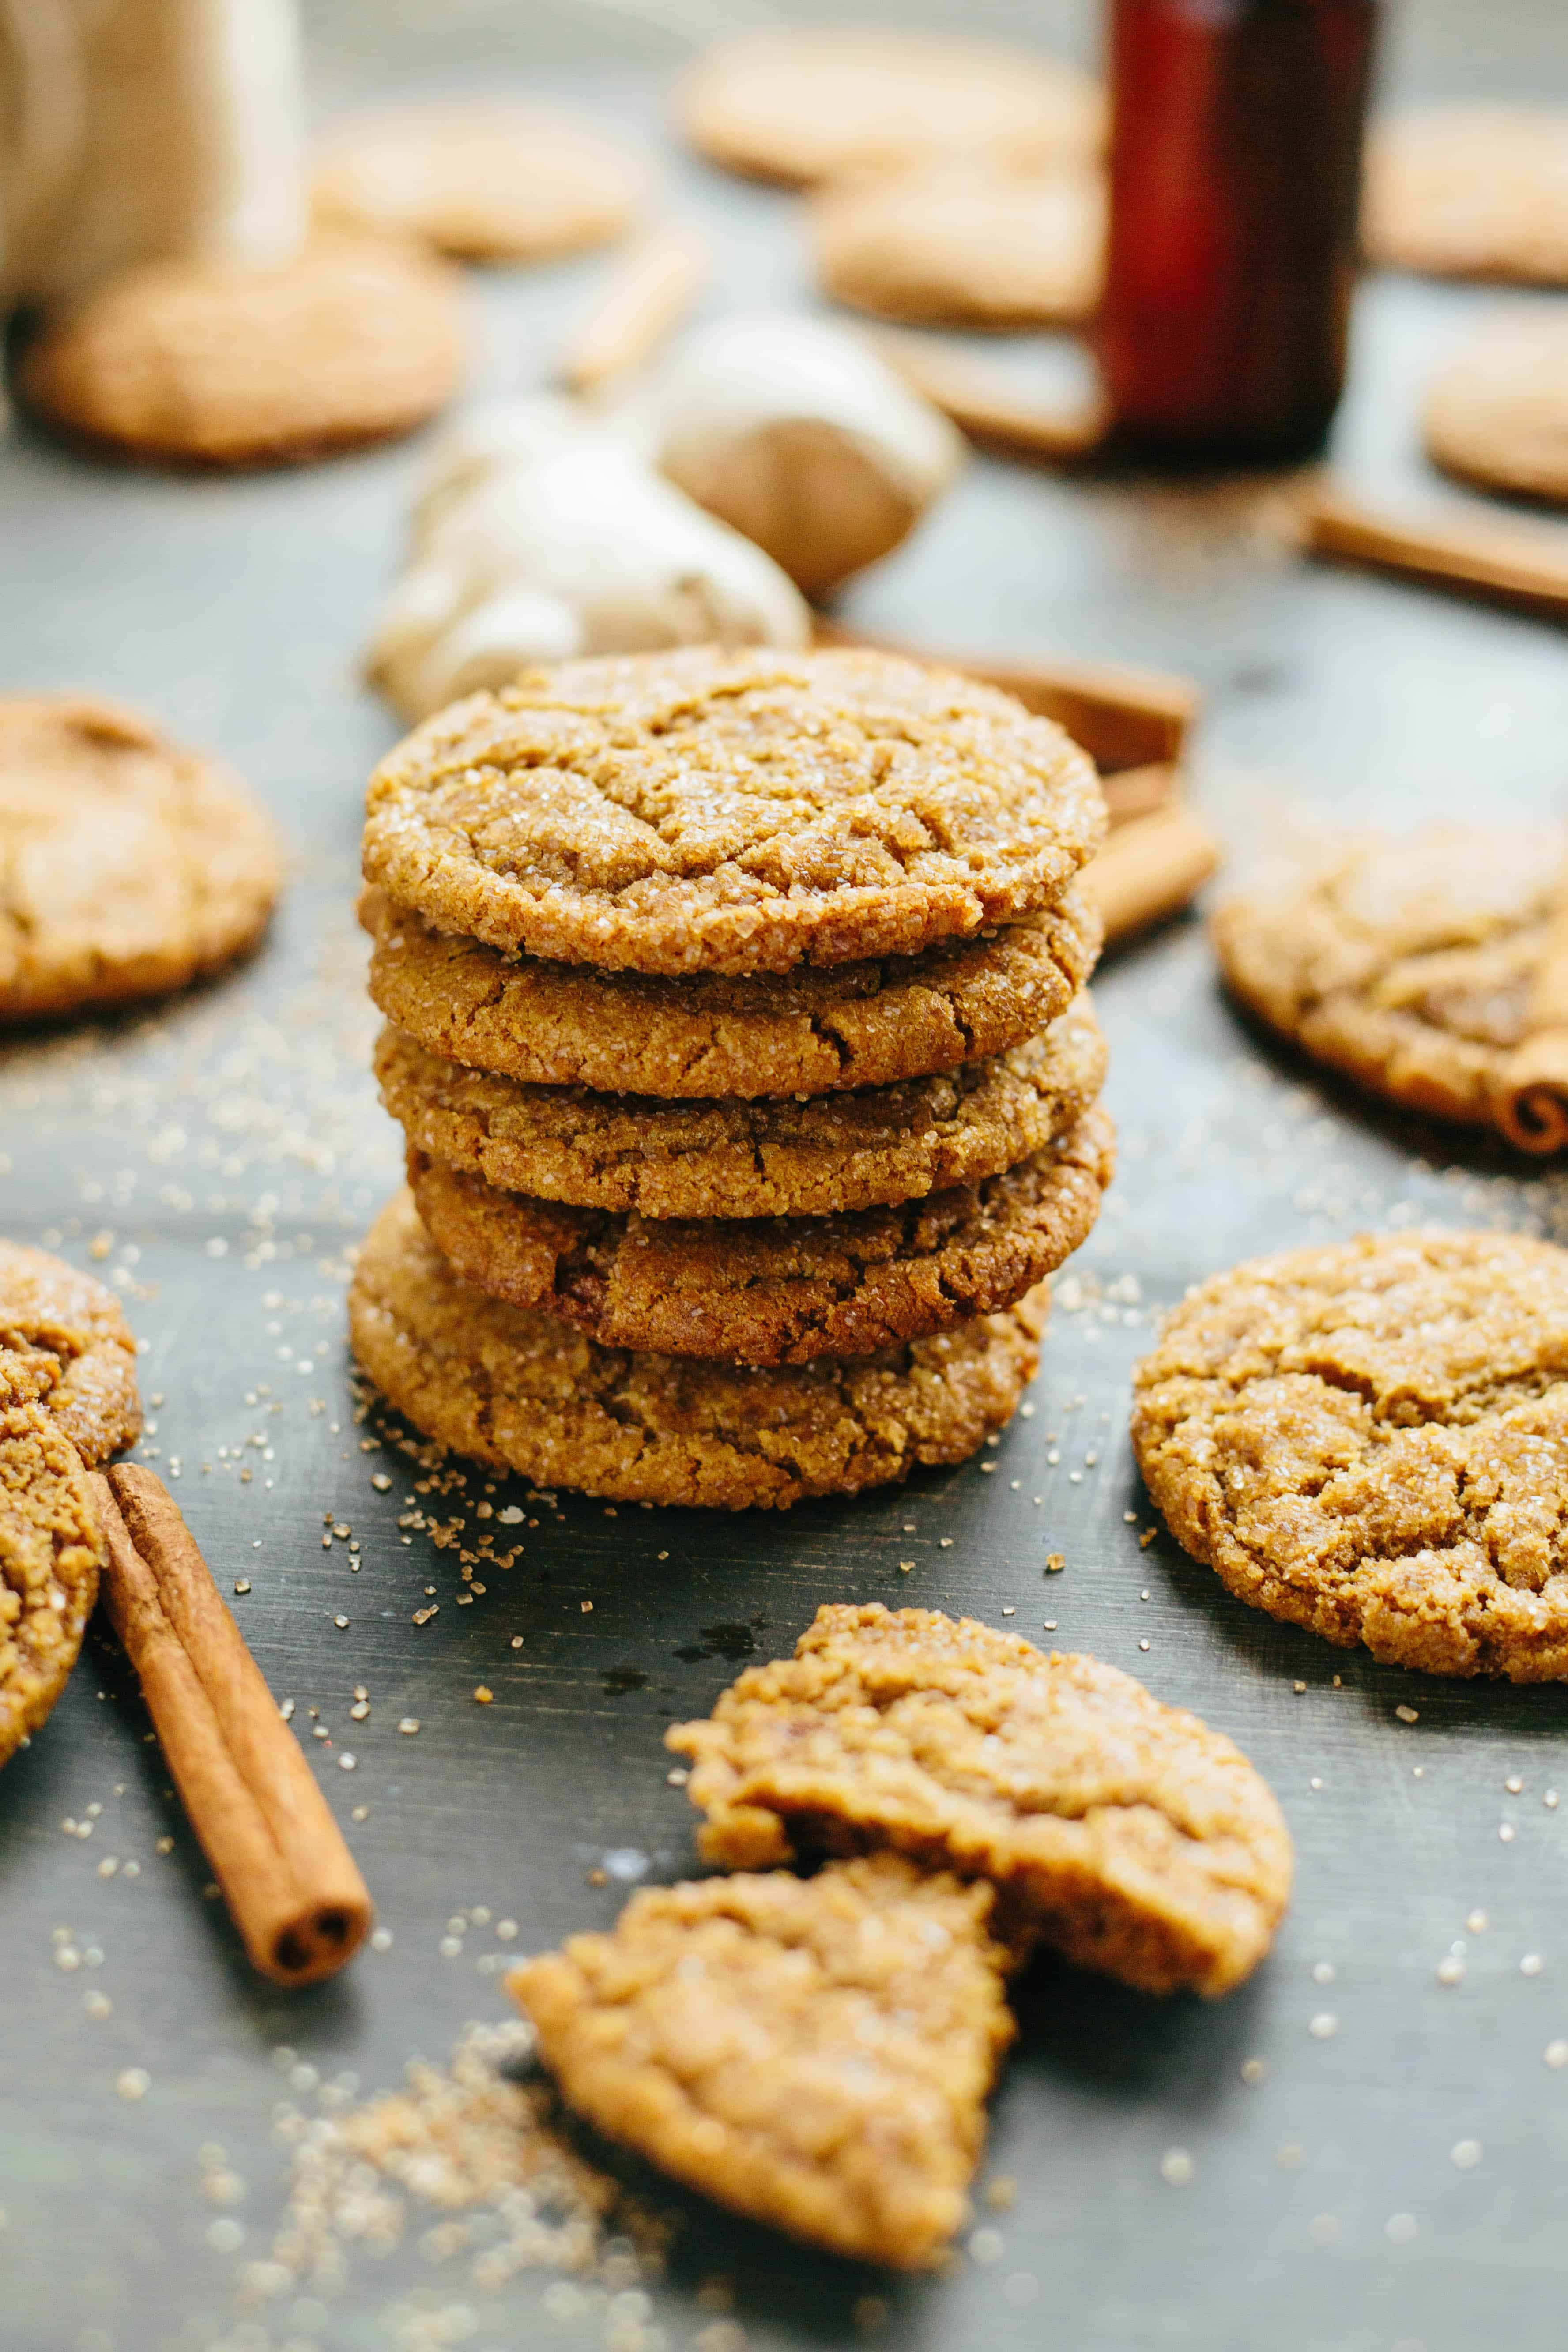 Brown Butter Ginger Molasses Cookies are lightly spiced and intensely buttery with a chewy, crispy texture. An easy Christmas cookie recipe made even better with brown butter #easy #christmas #cookie #recipe #ginger #molasses #gingersnap